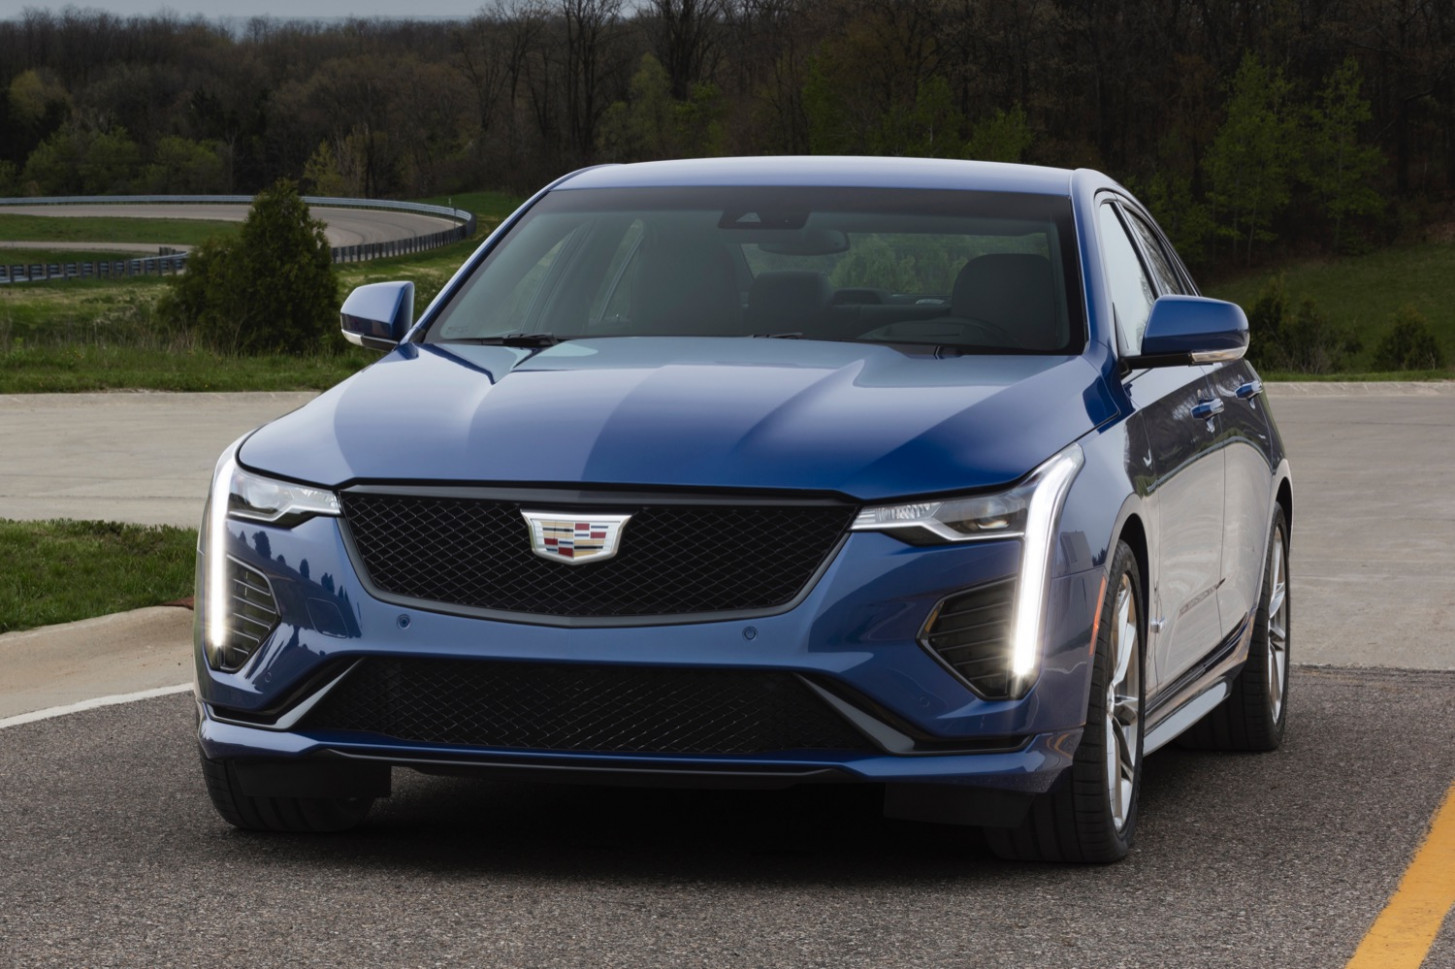 Specs Cadillac Ct5 To Get Super Cruise In 2022